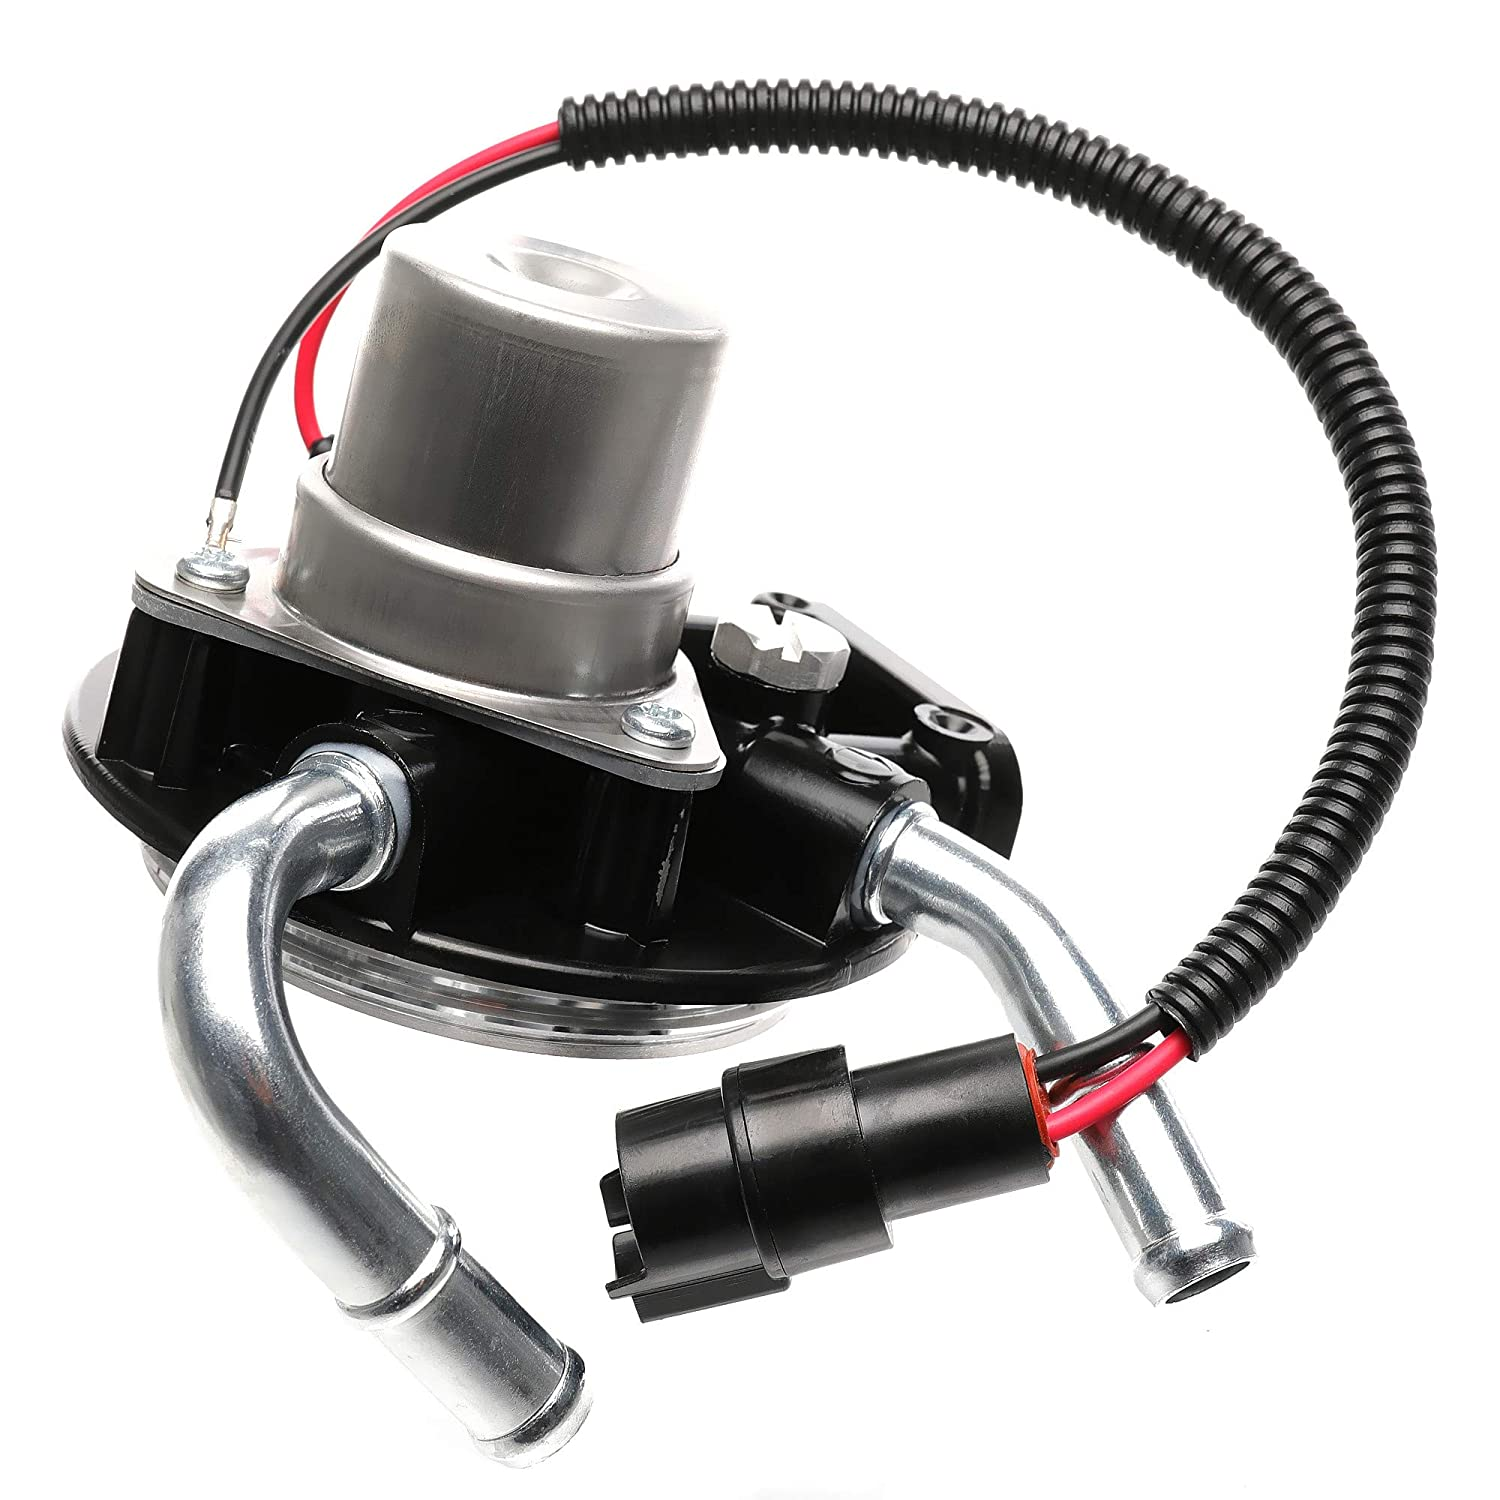 iFJF 12642623 Fuel Filter Head with Hand Fuel Pump and Heater and Aluminum Air Bleeder Screw for GM Chevrolet GMC Duramax V8 6.6L 2004-2013